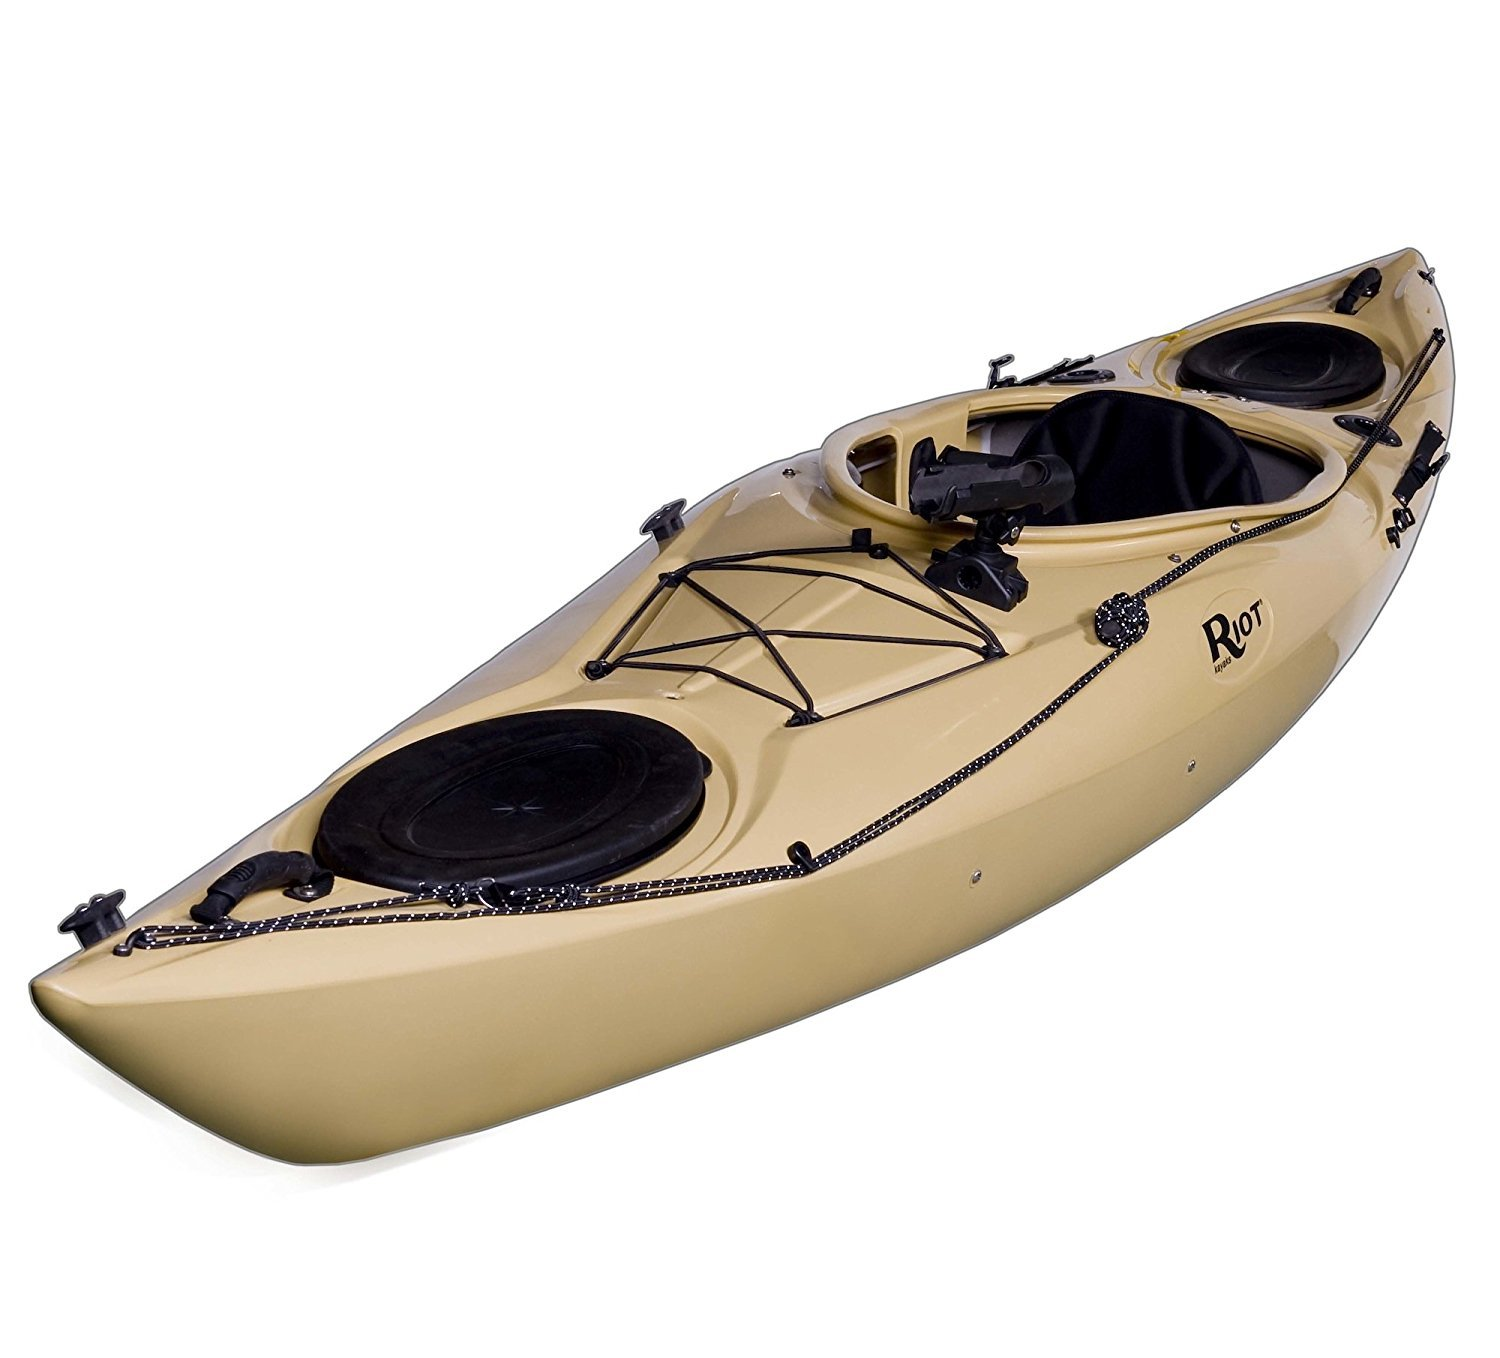 Riot Kayaks Enduro 12 Angler Flatwater Fishing Kayak (Sand 12-Feet) [並行輸入品]   B075K8G3XD